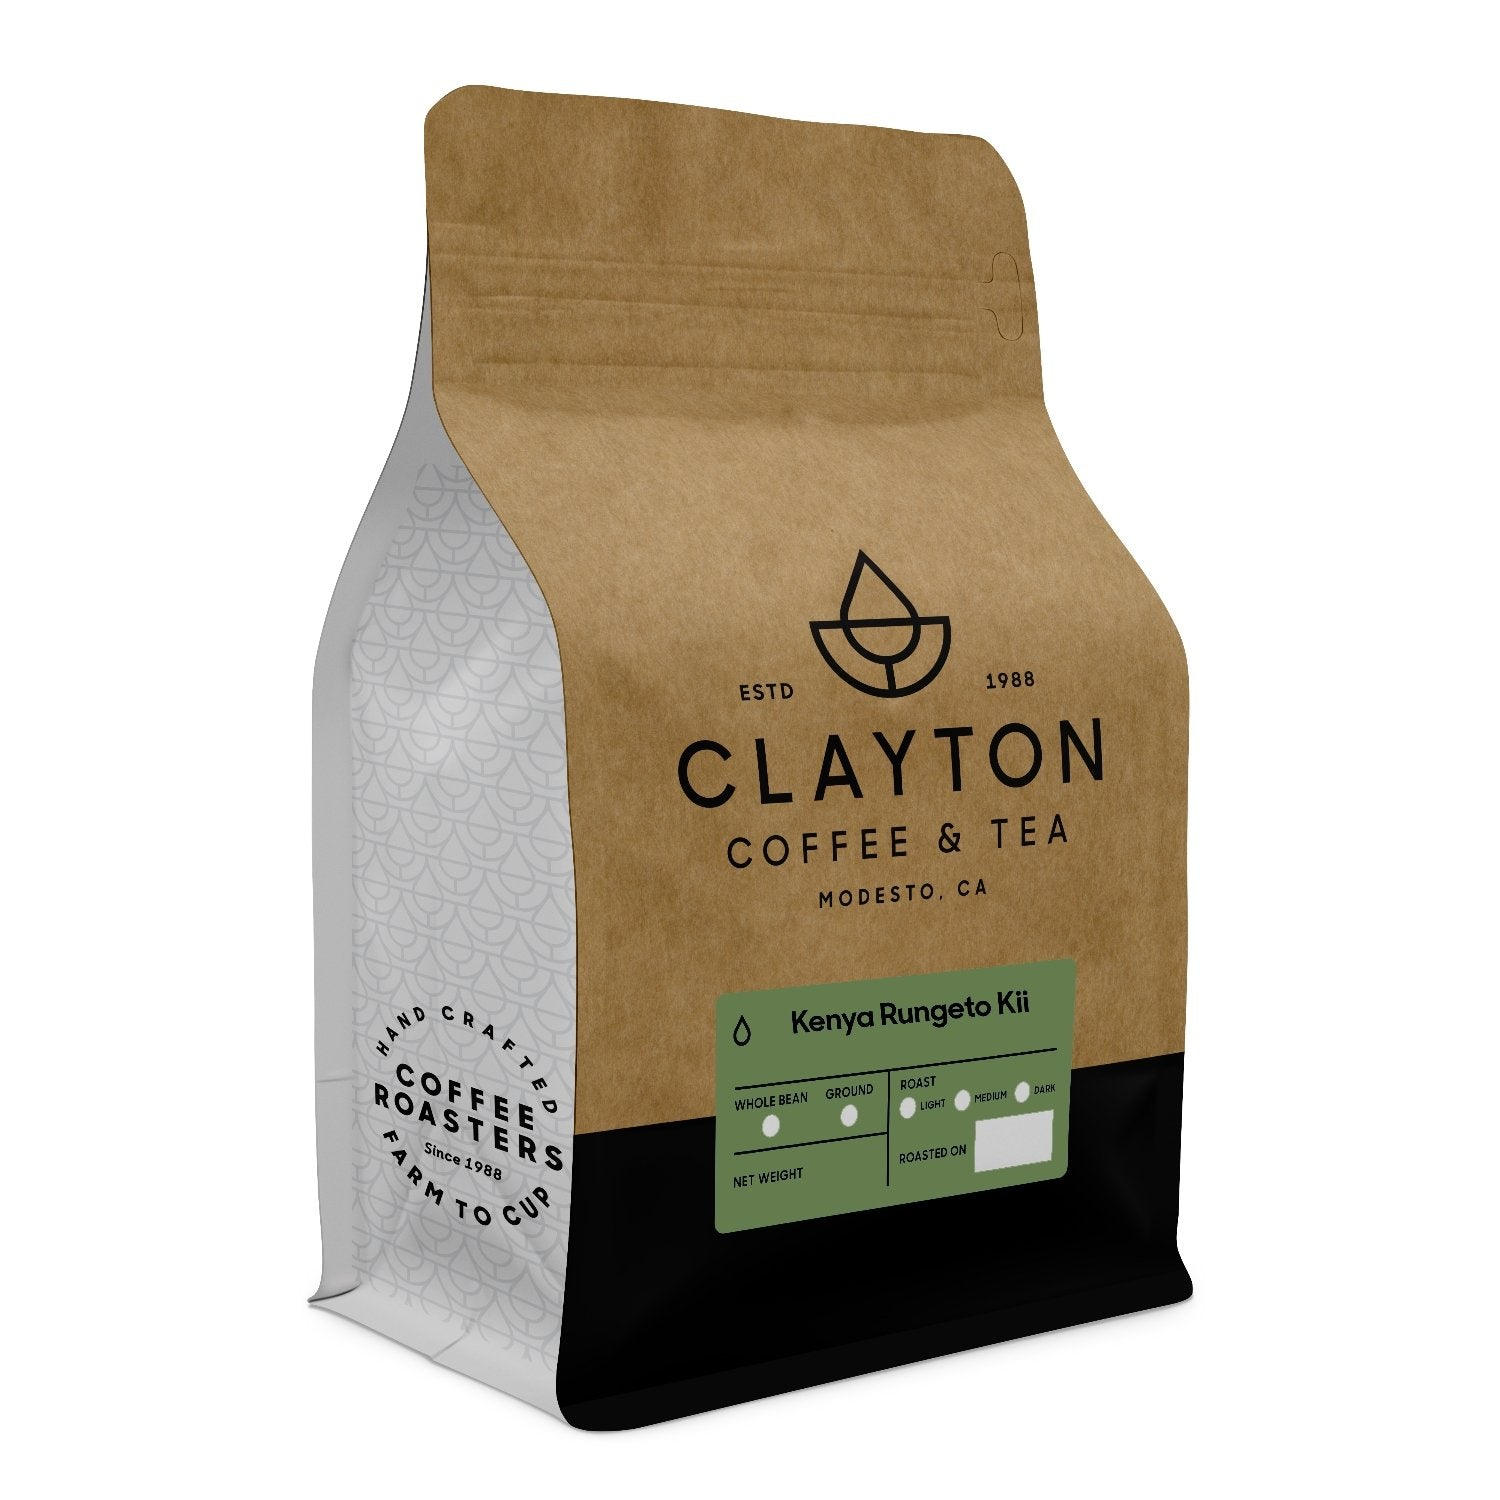 Kenya Rungeto Kii - Clayton Coffee & Tea